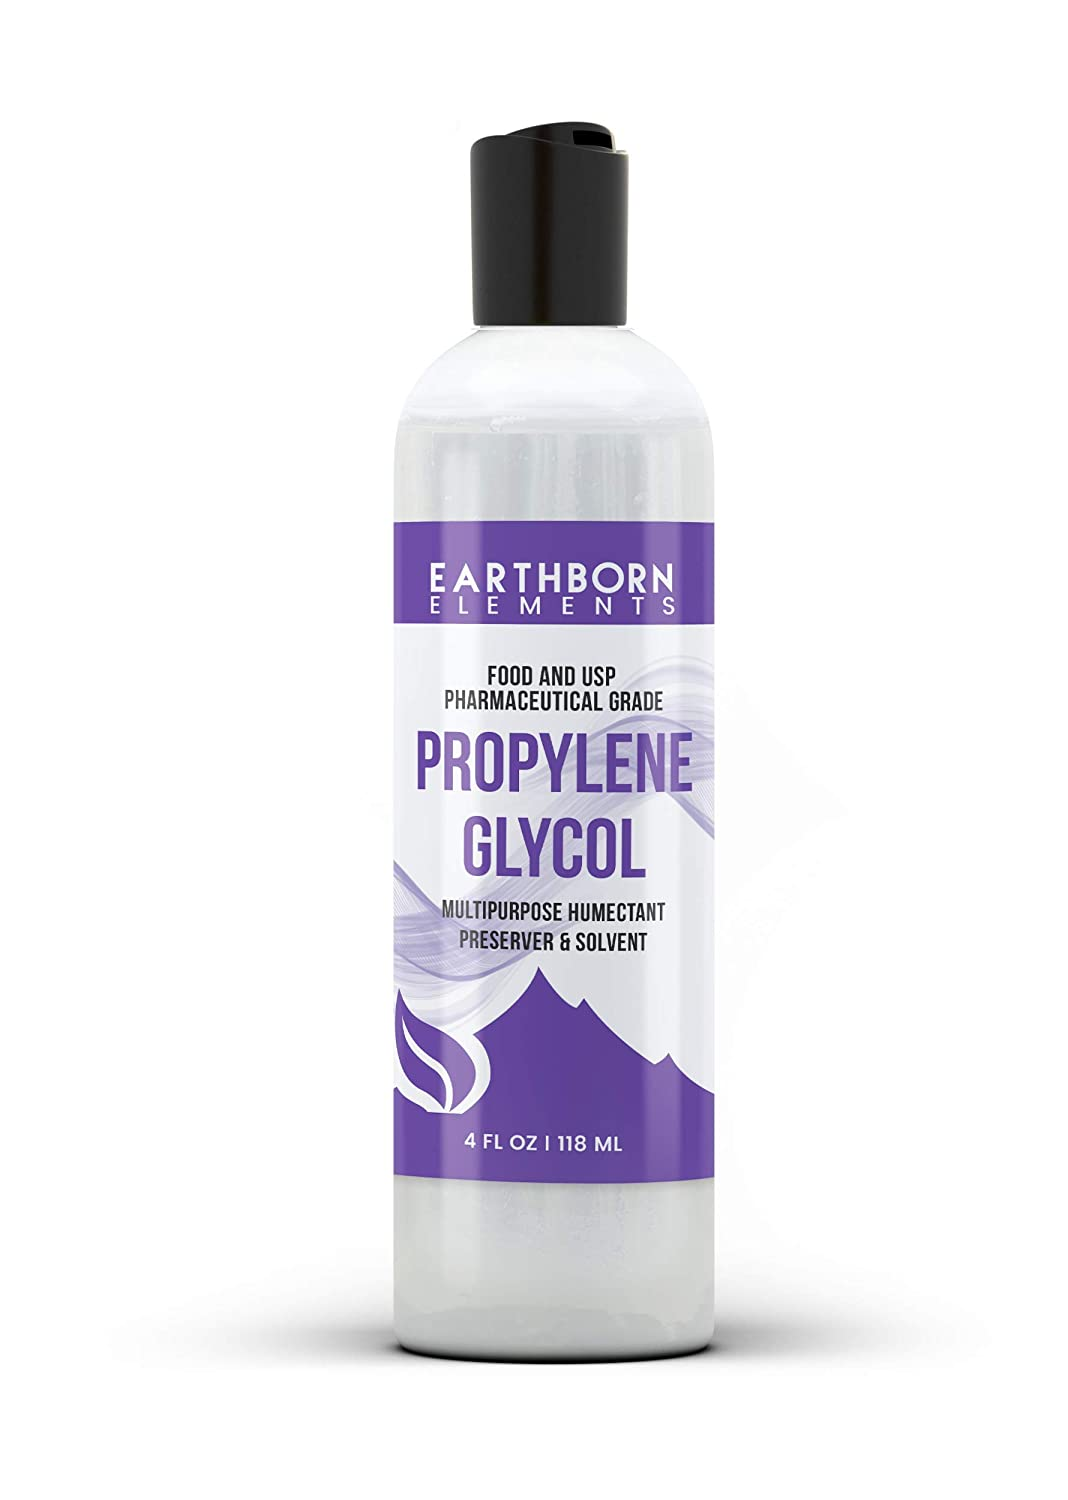 Propylene Glycol (4 oz.) by Earthborn Elements, 100% Pure, Food & Pharmaceutical Grade, Hypoallergenic Moisturizer & Skin Cleanser